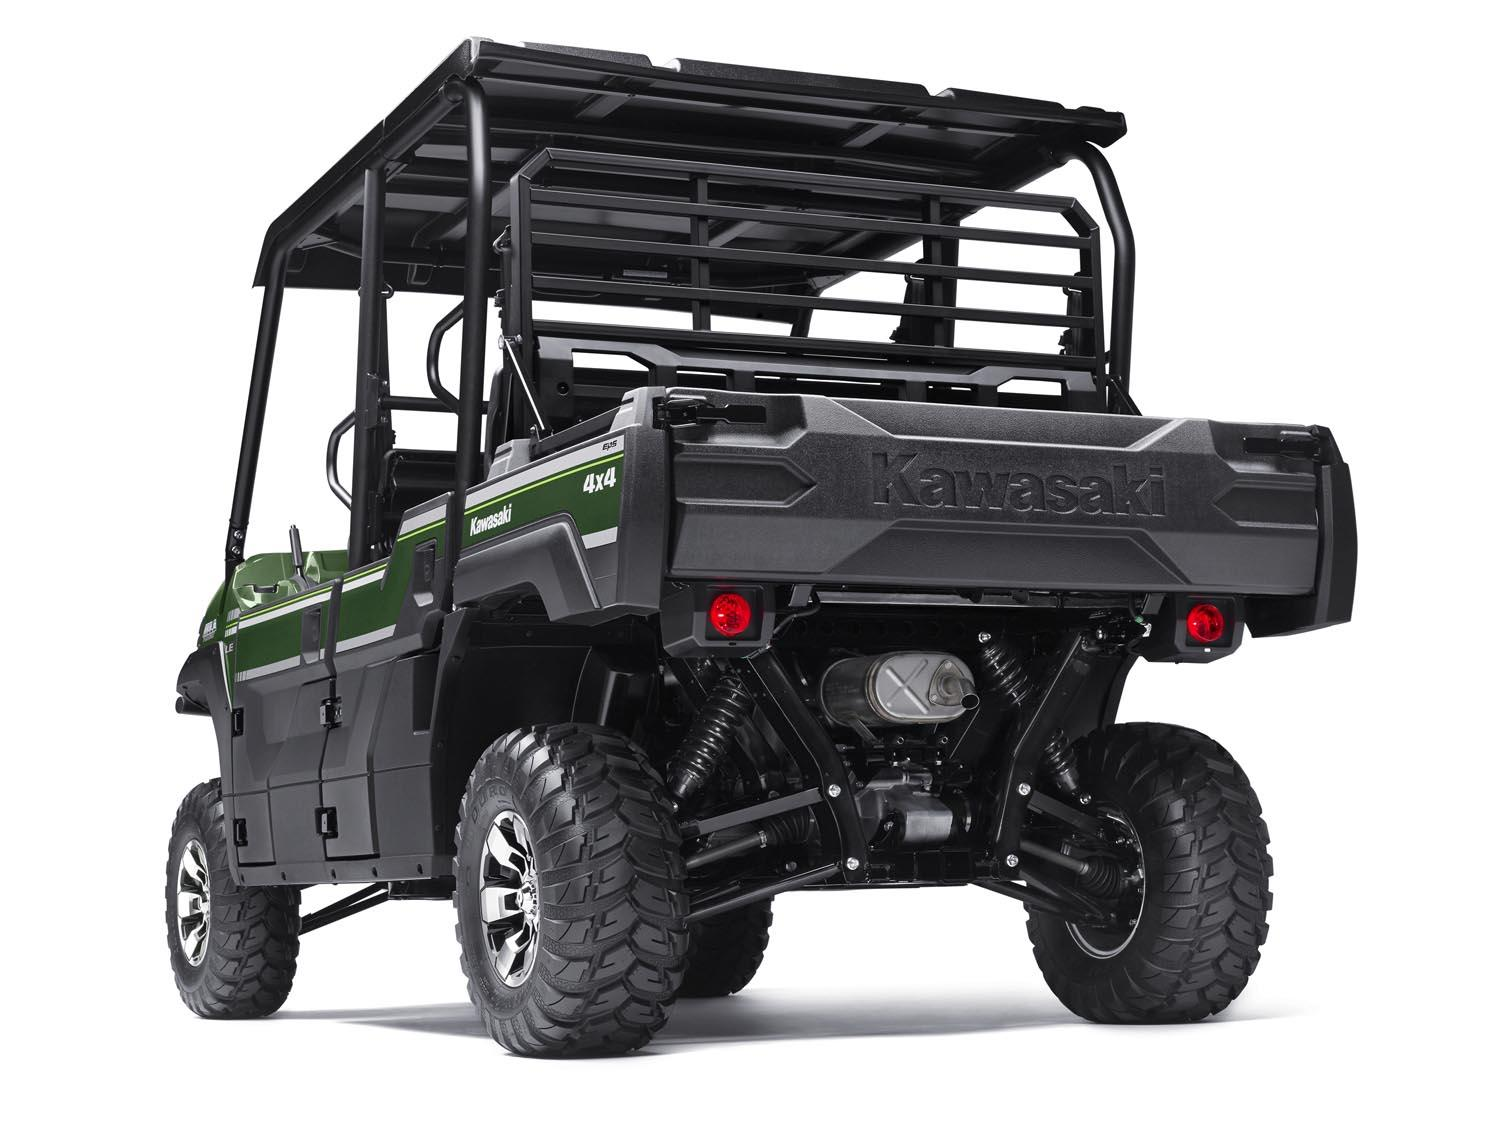 2015 Kawasaki Mule PRO-FXT™ EPS LE in North Reading, Massachusetts - Photo 10